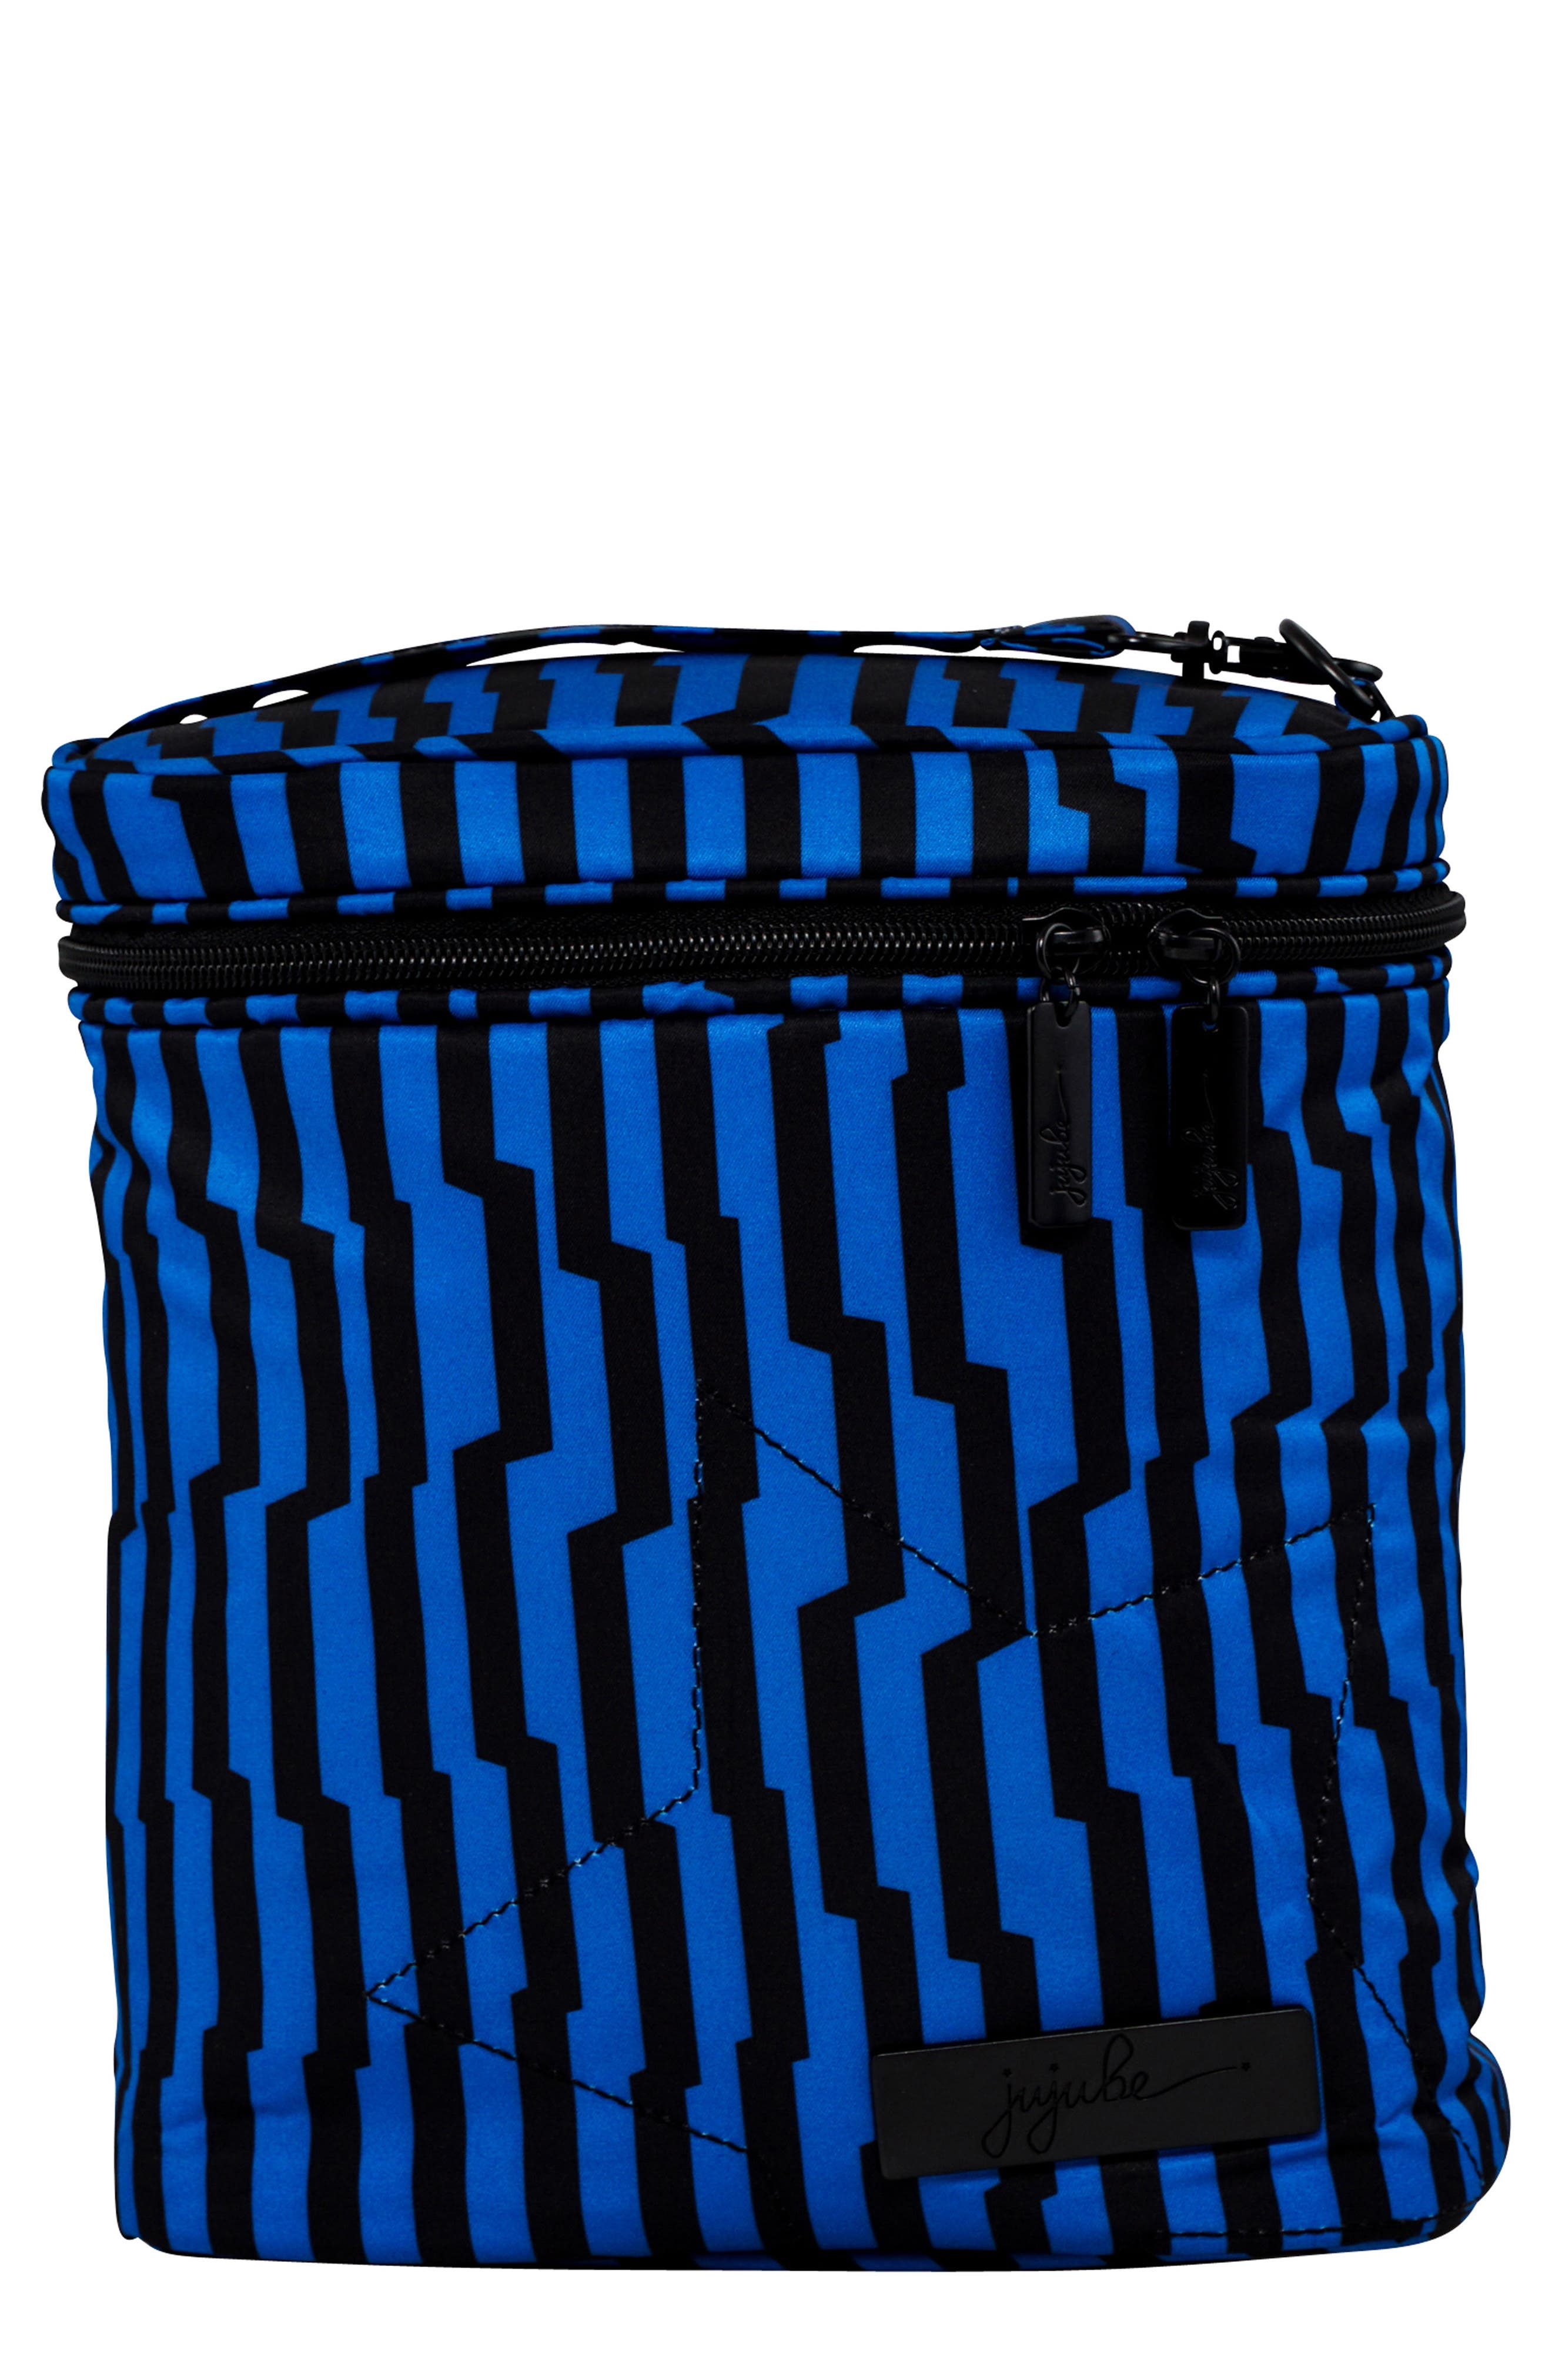 'Fuel Cell - Onyx Collection' Lunch Bag,                             Main thumbnail 1, color,                             001